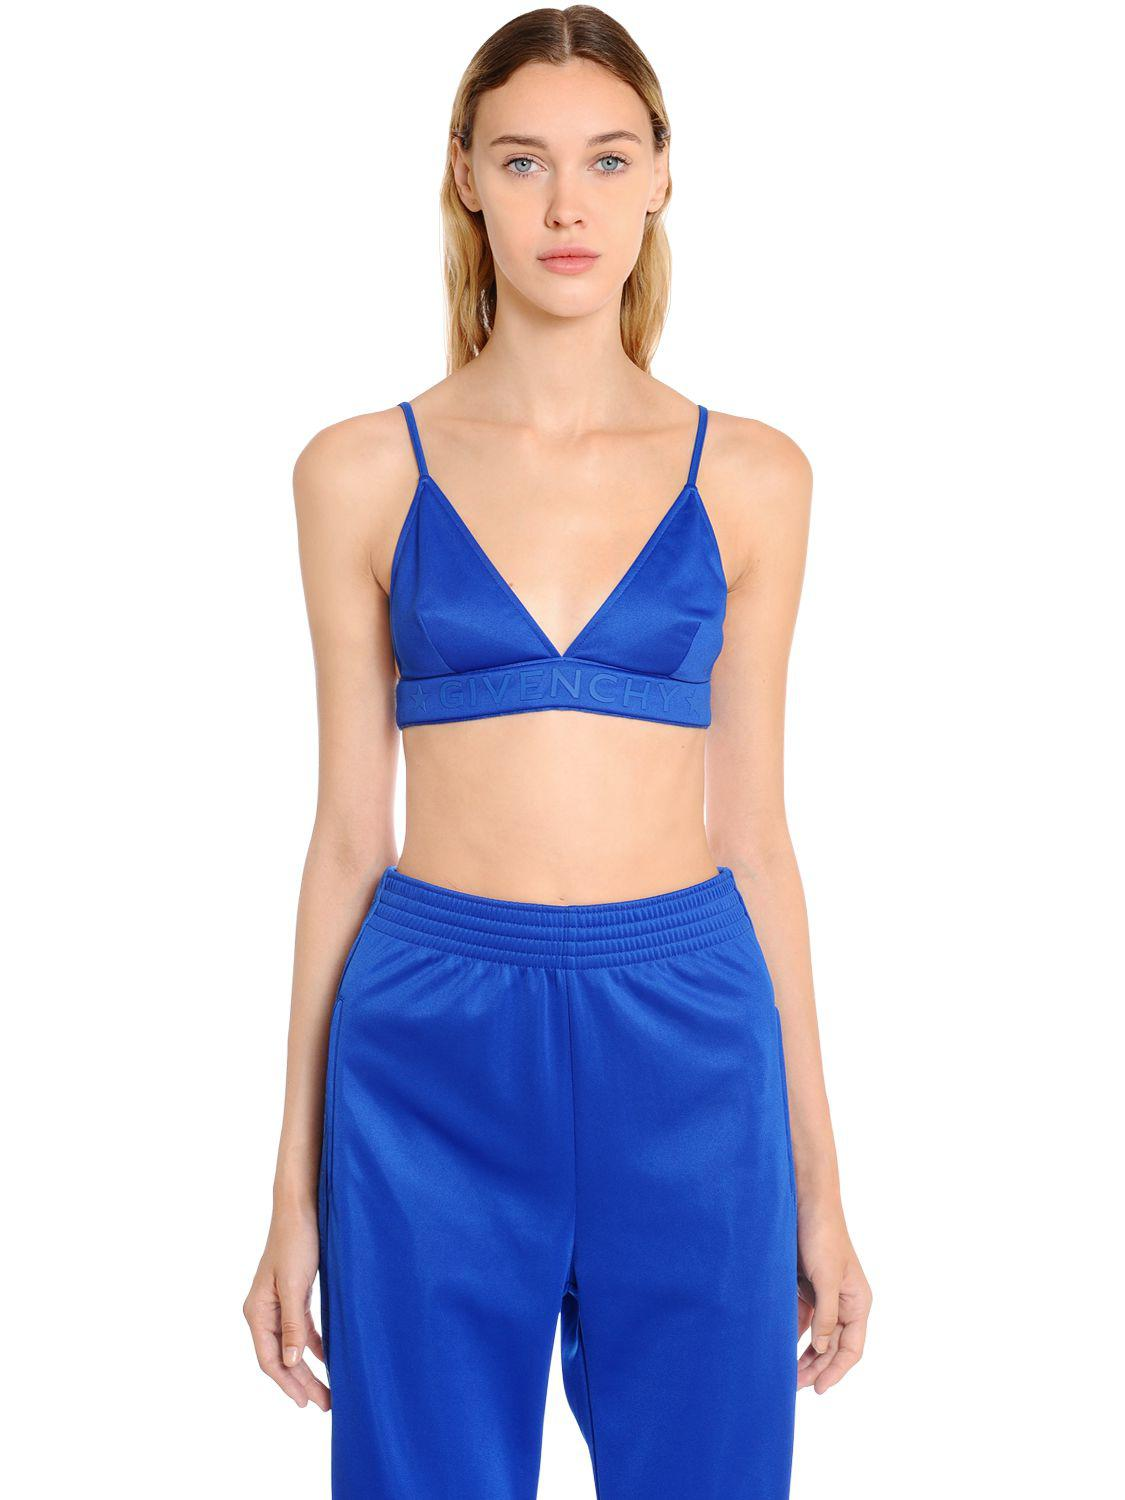 eaf0881a703b8 Lyst - Givenchy Logo Printed Neoprene Jersey Bra Top in Blue